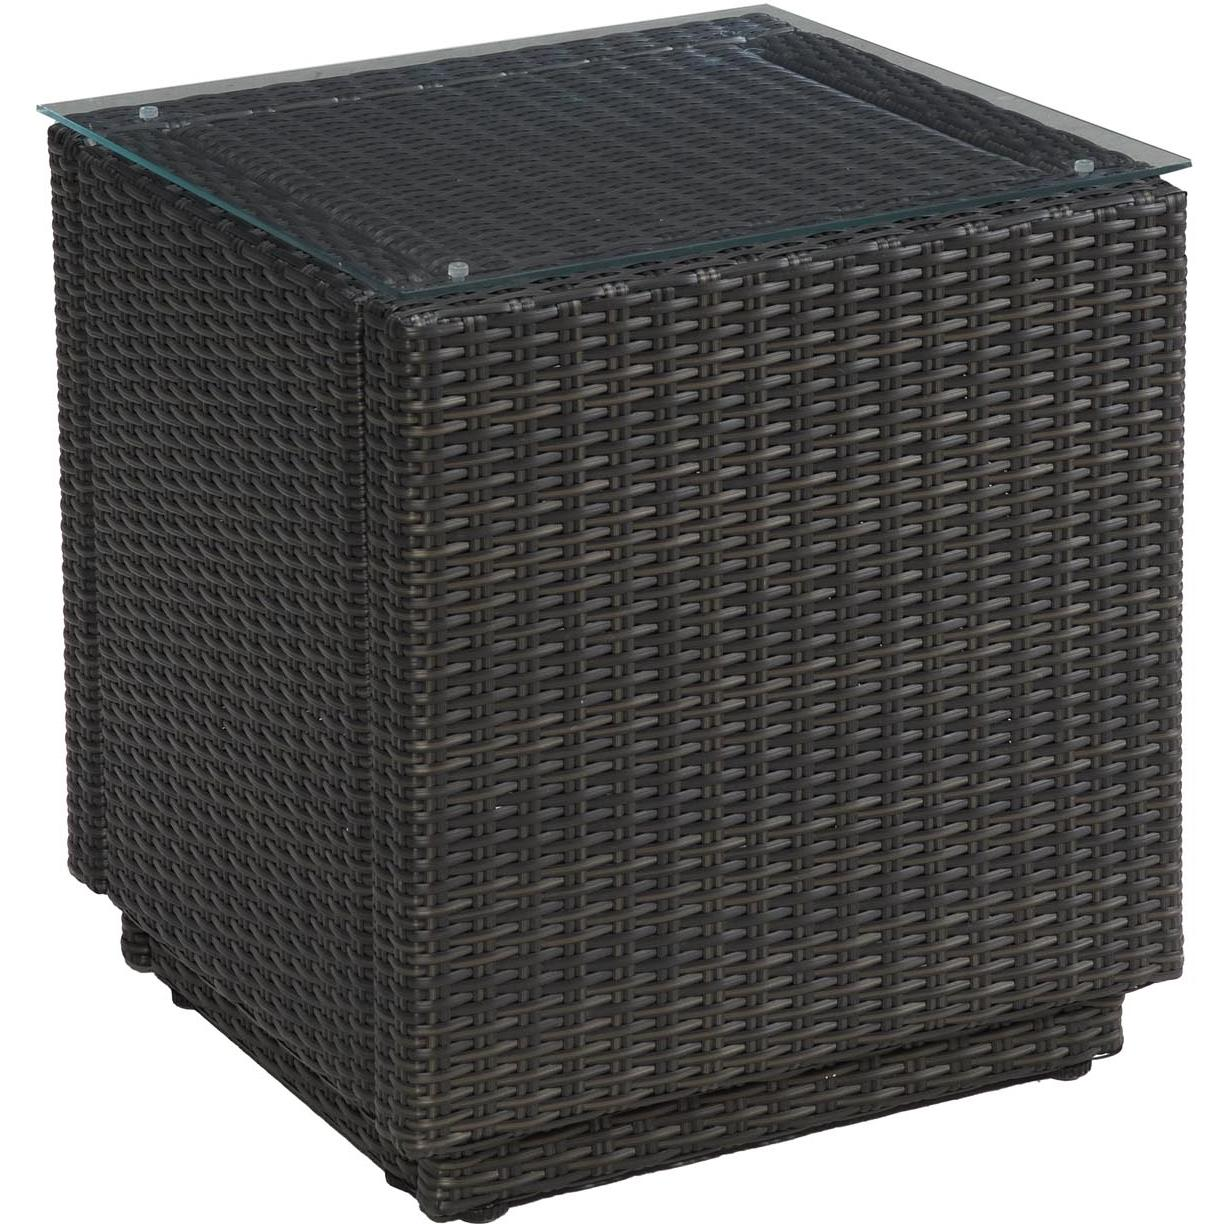 Home Styles Riviera Resin Wicker Outdoor Patio End Table With Glass Top - Brown